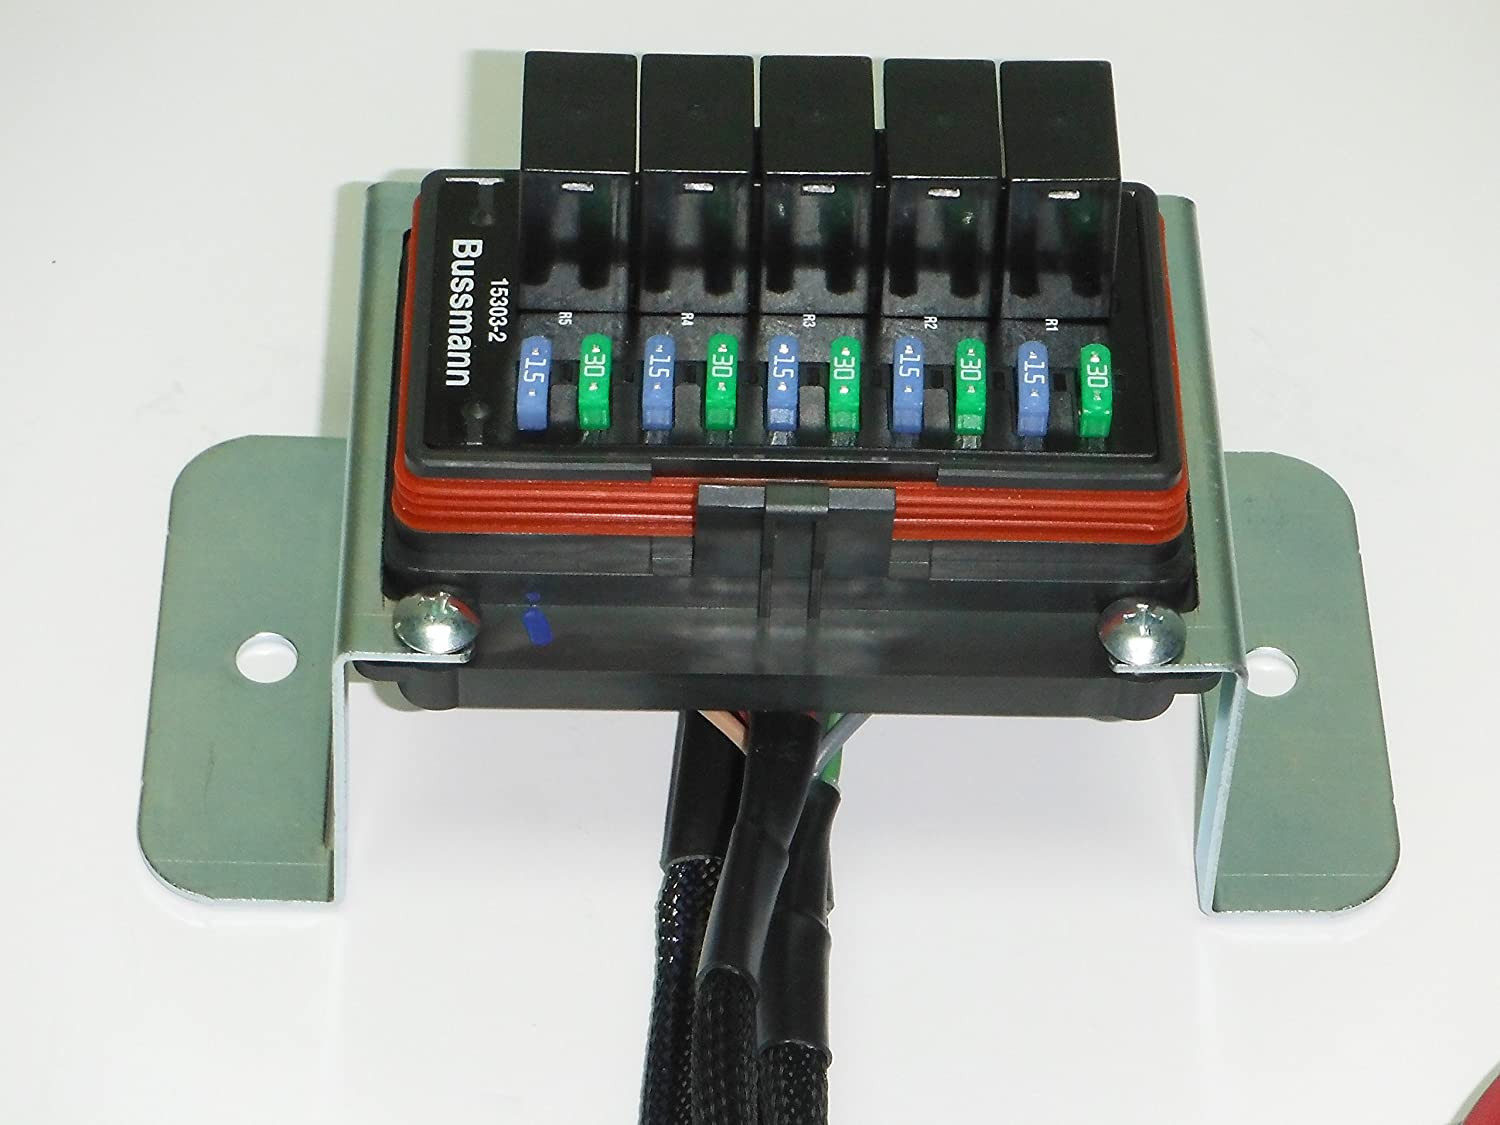 Concours Specialties Universal Waterproof Relay/Fuse Distribution Box  Cooper Bussmann w/Ground Block: Amazon.com: Industrial & Scientific